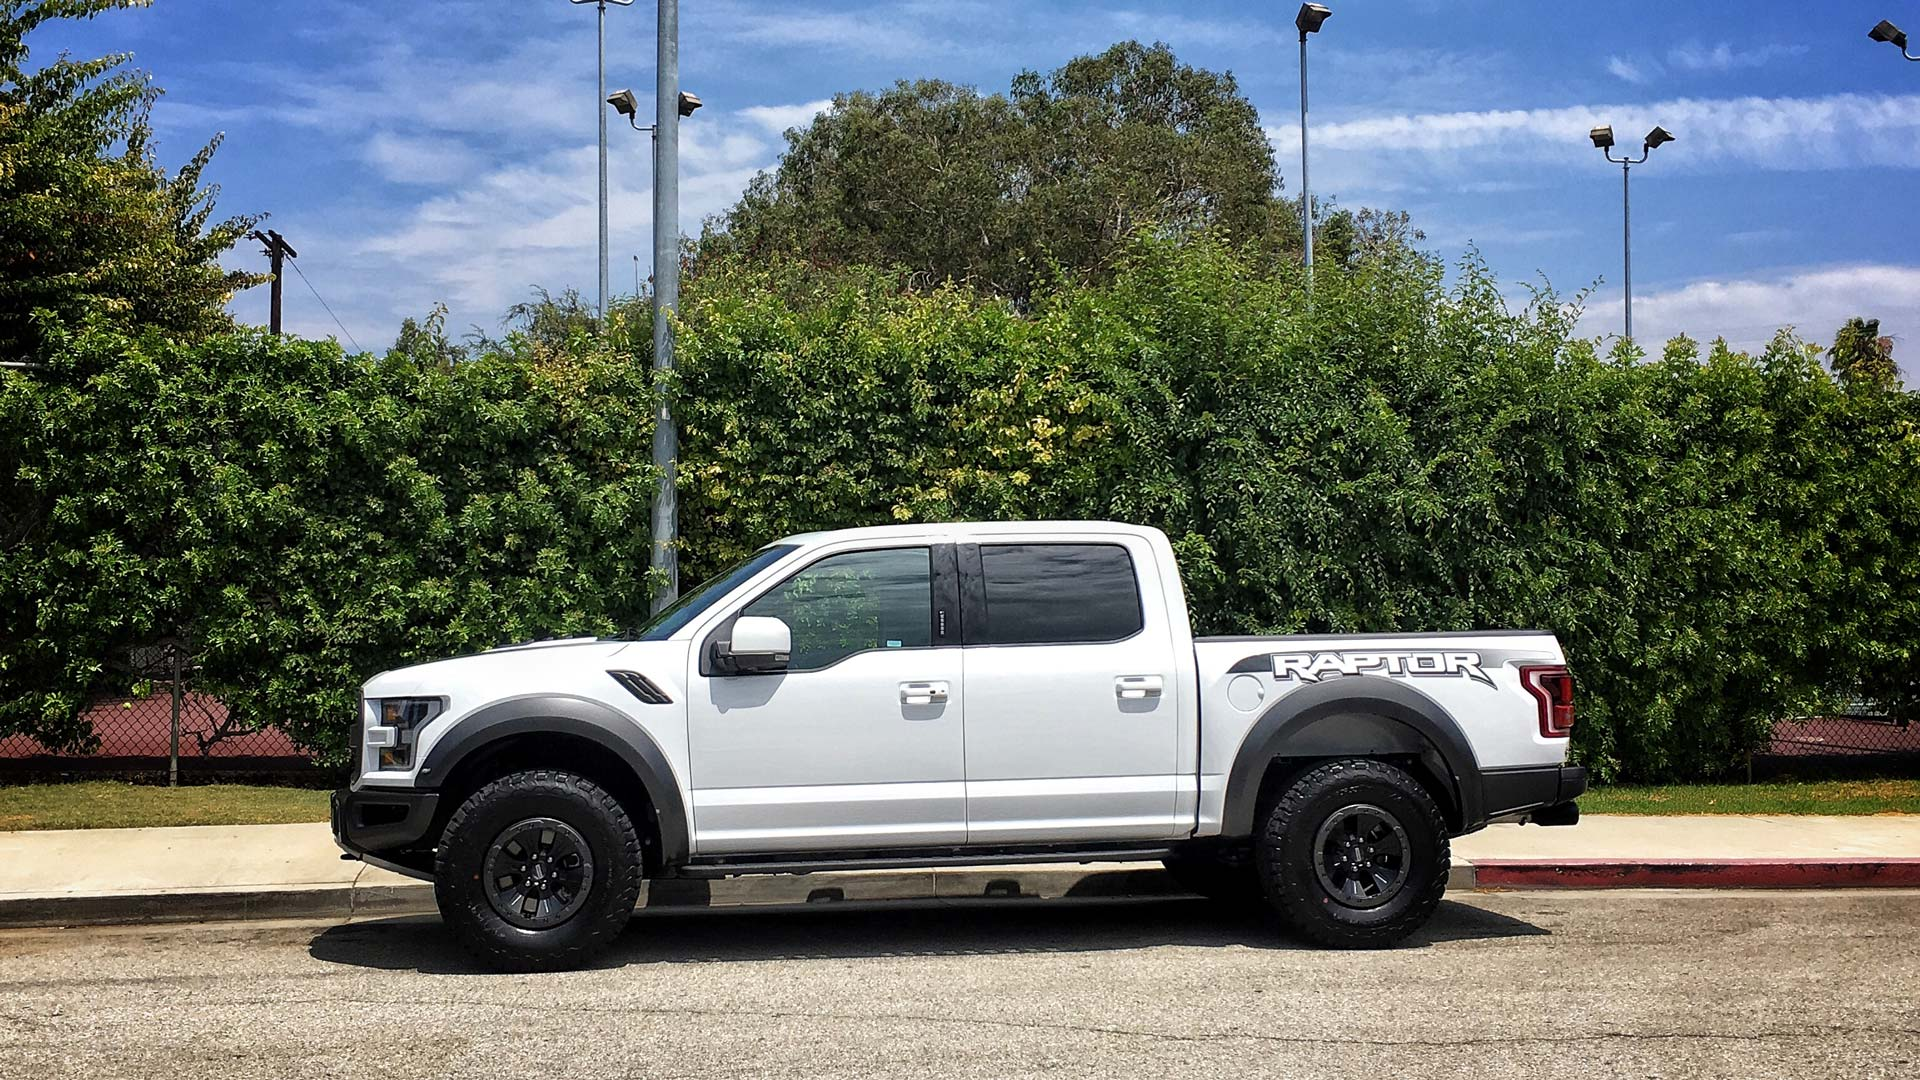 Gen 2 my first truck 2017 ford raptor supercrew ford raptor i just marked one thousand miles on the odometer i love this truck i purchased with 802a moonroof ext hood graphics cf fpbe tailgate step voltagebd Gallery